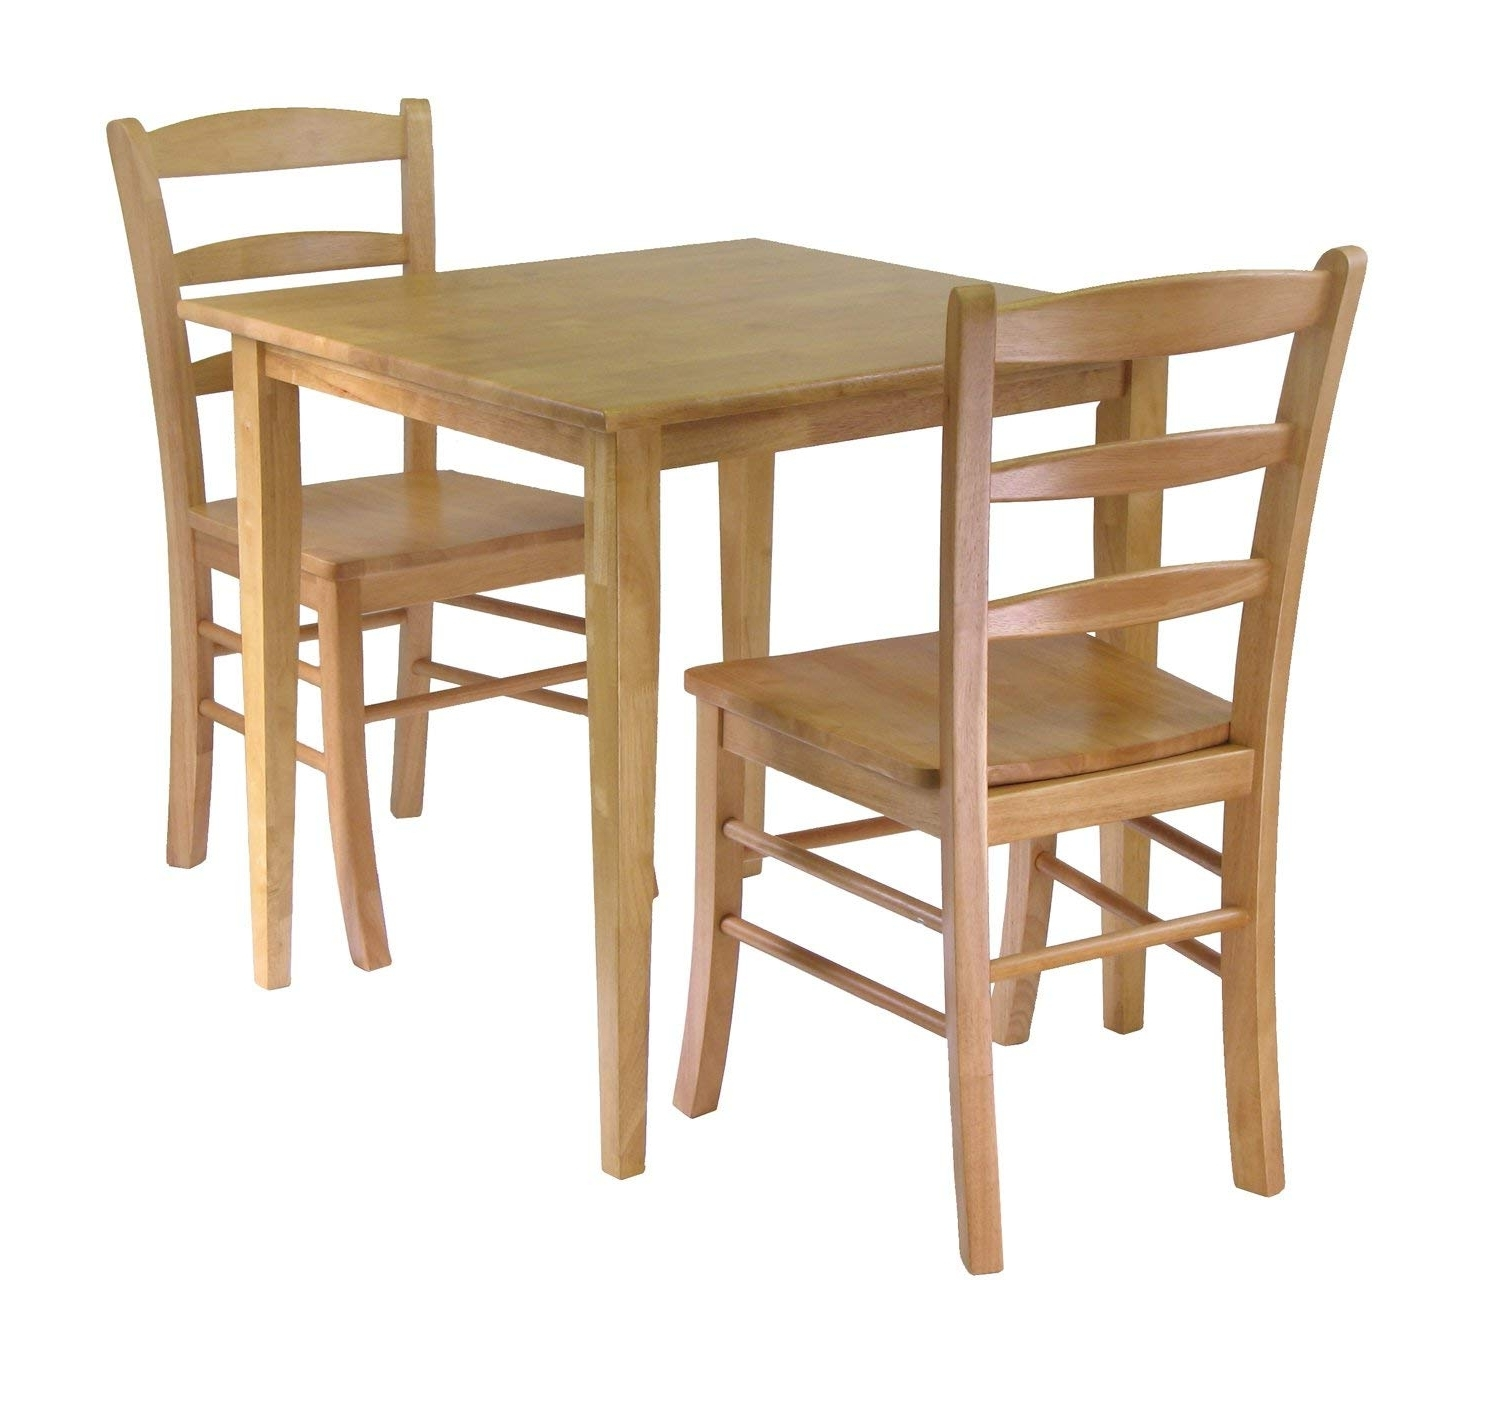 Amazon – Winsome Groveland Square Dining Table With 2 Chairs, 3 Intended For Most Recent Small Two Person Dining Tables (View 3 of 25)